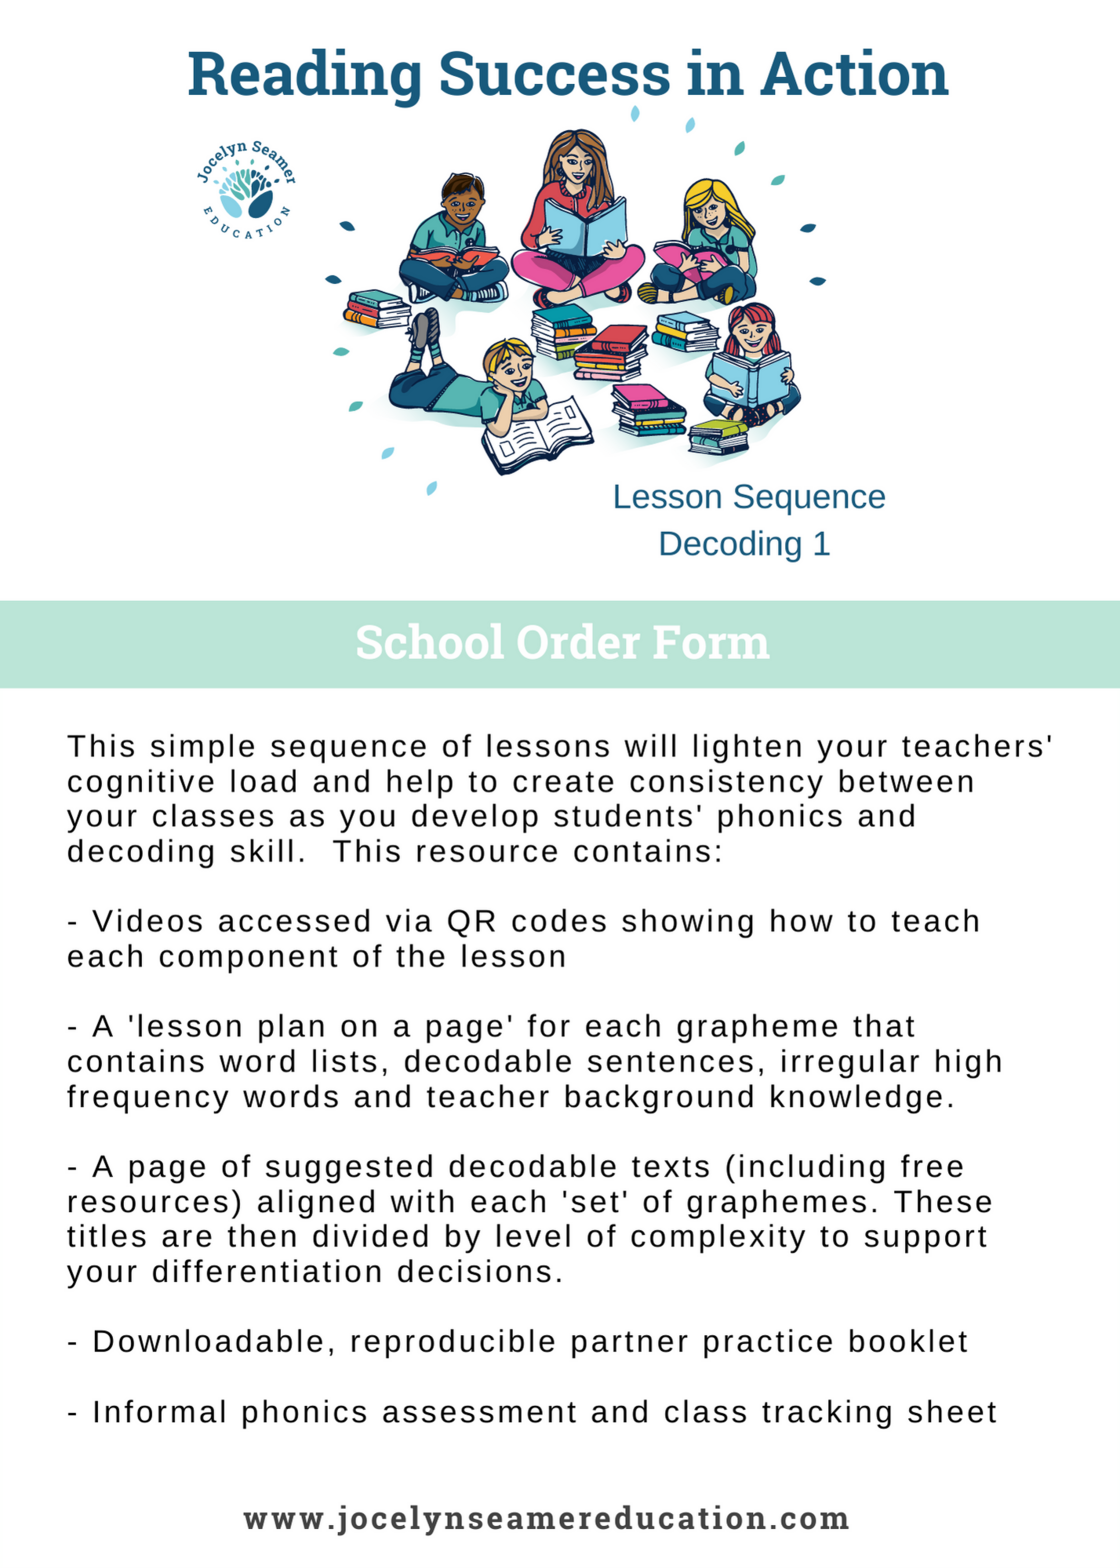 Reading Success in Action - School Order Form